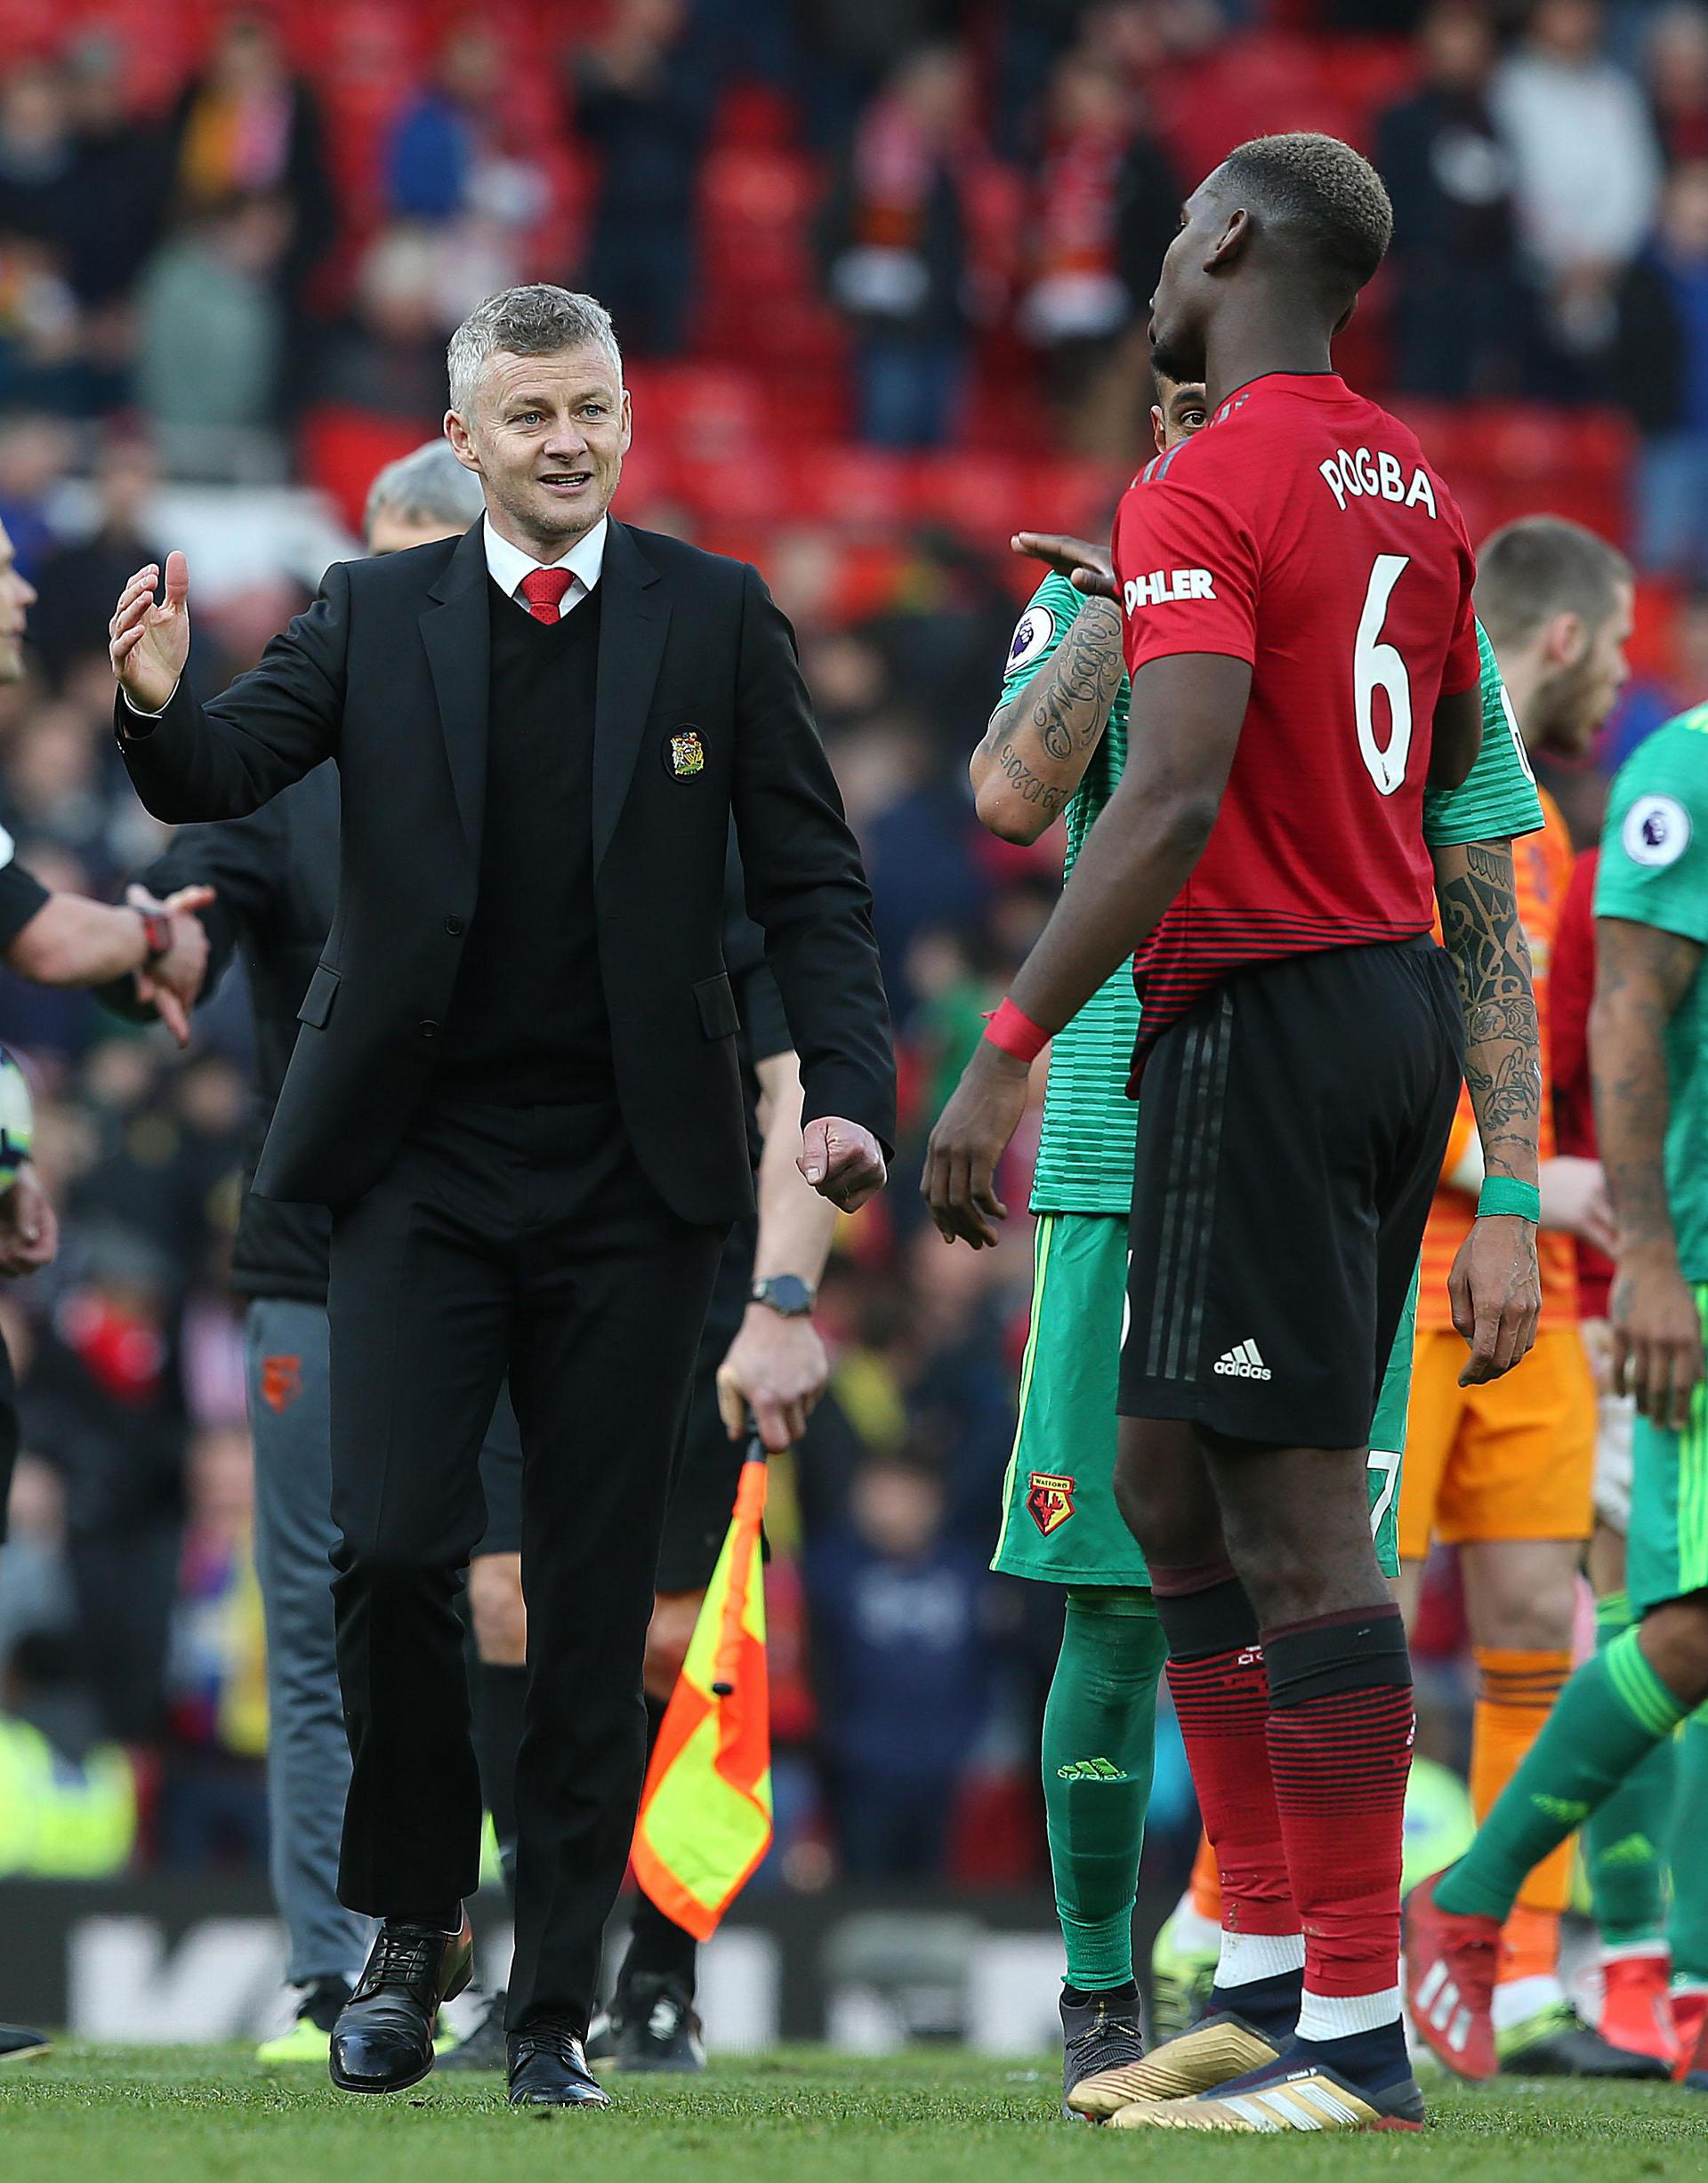 Ole Gunnar Solskjaer greets Paul Pogba at full-time in Manchester United's 2-1 win over Watford